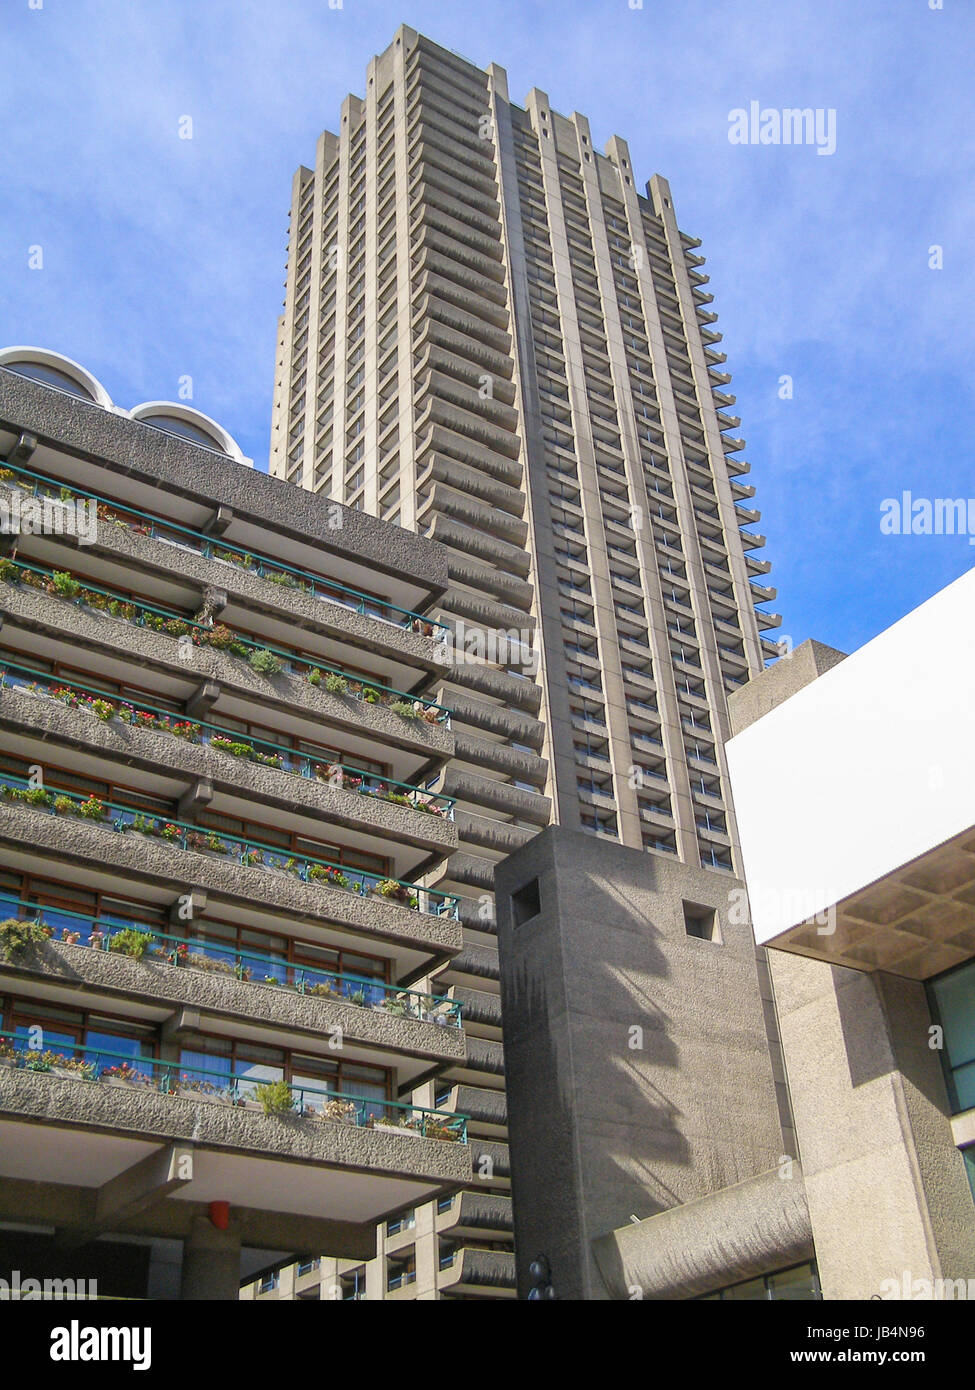 LONDON, ENGLAND, UK - MARCH 07, 2008: The Barbican Complex built in the sixties and seventies is a Grade II listed Stock Photo